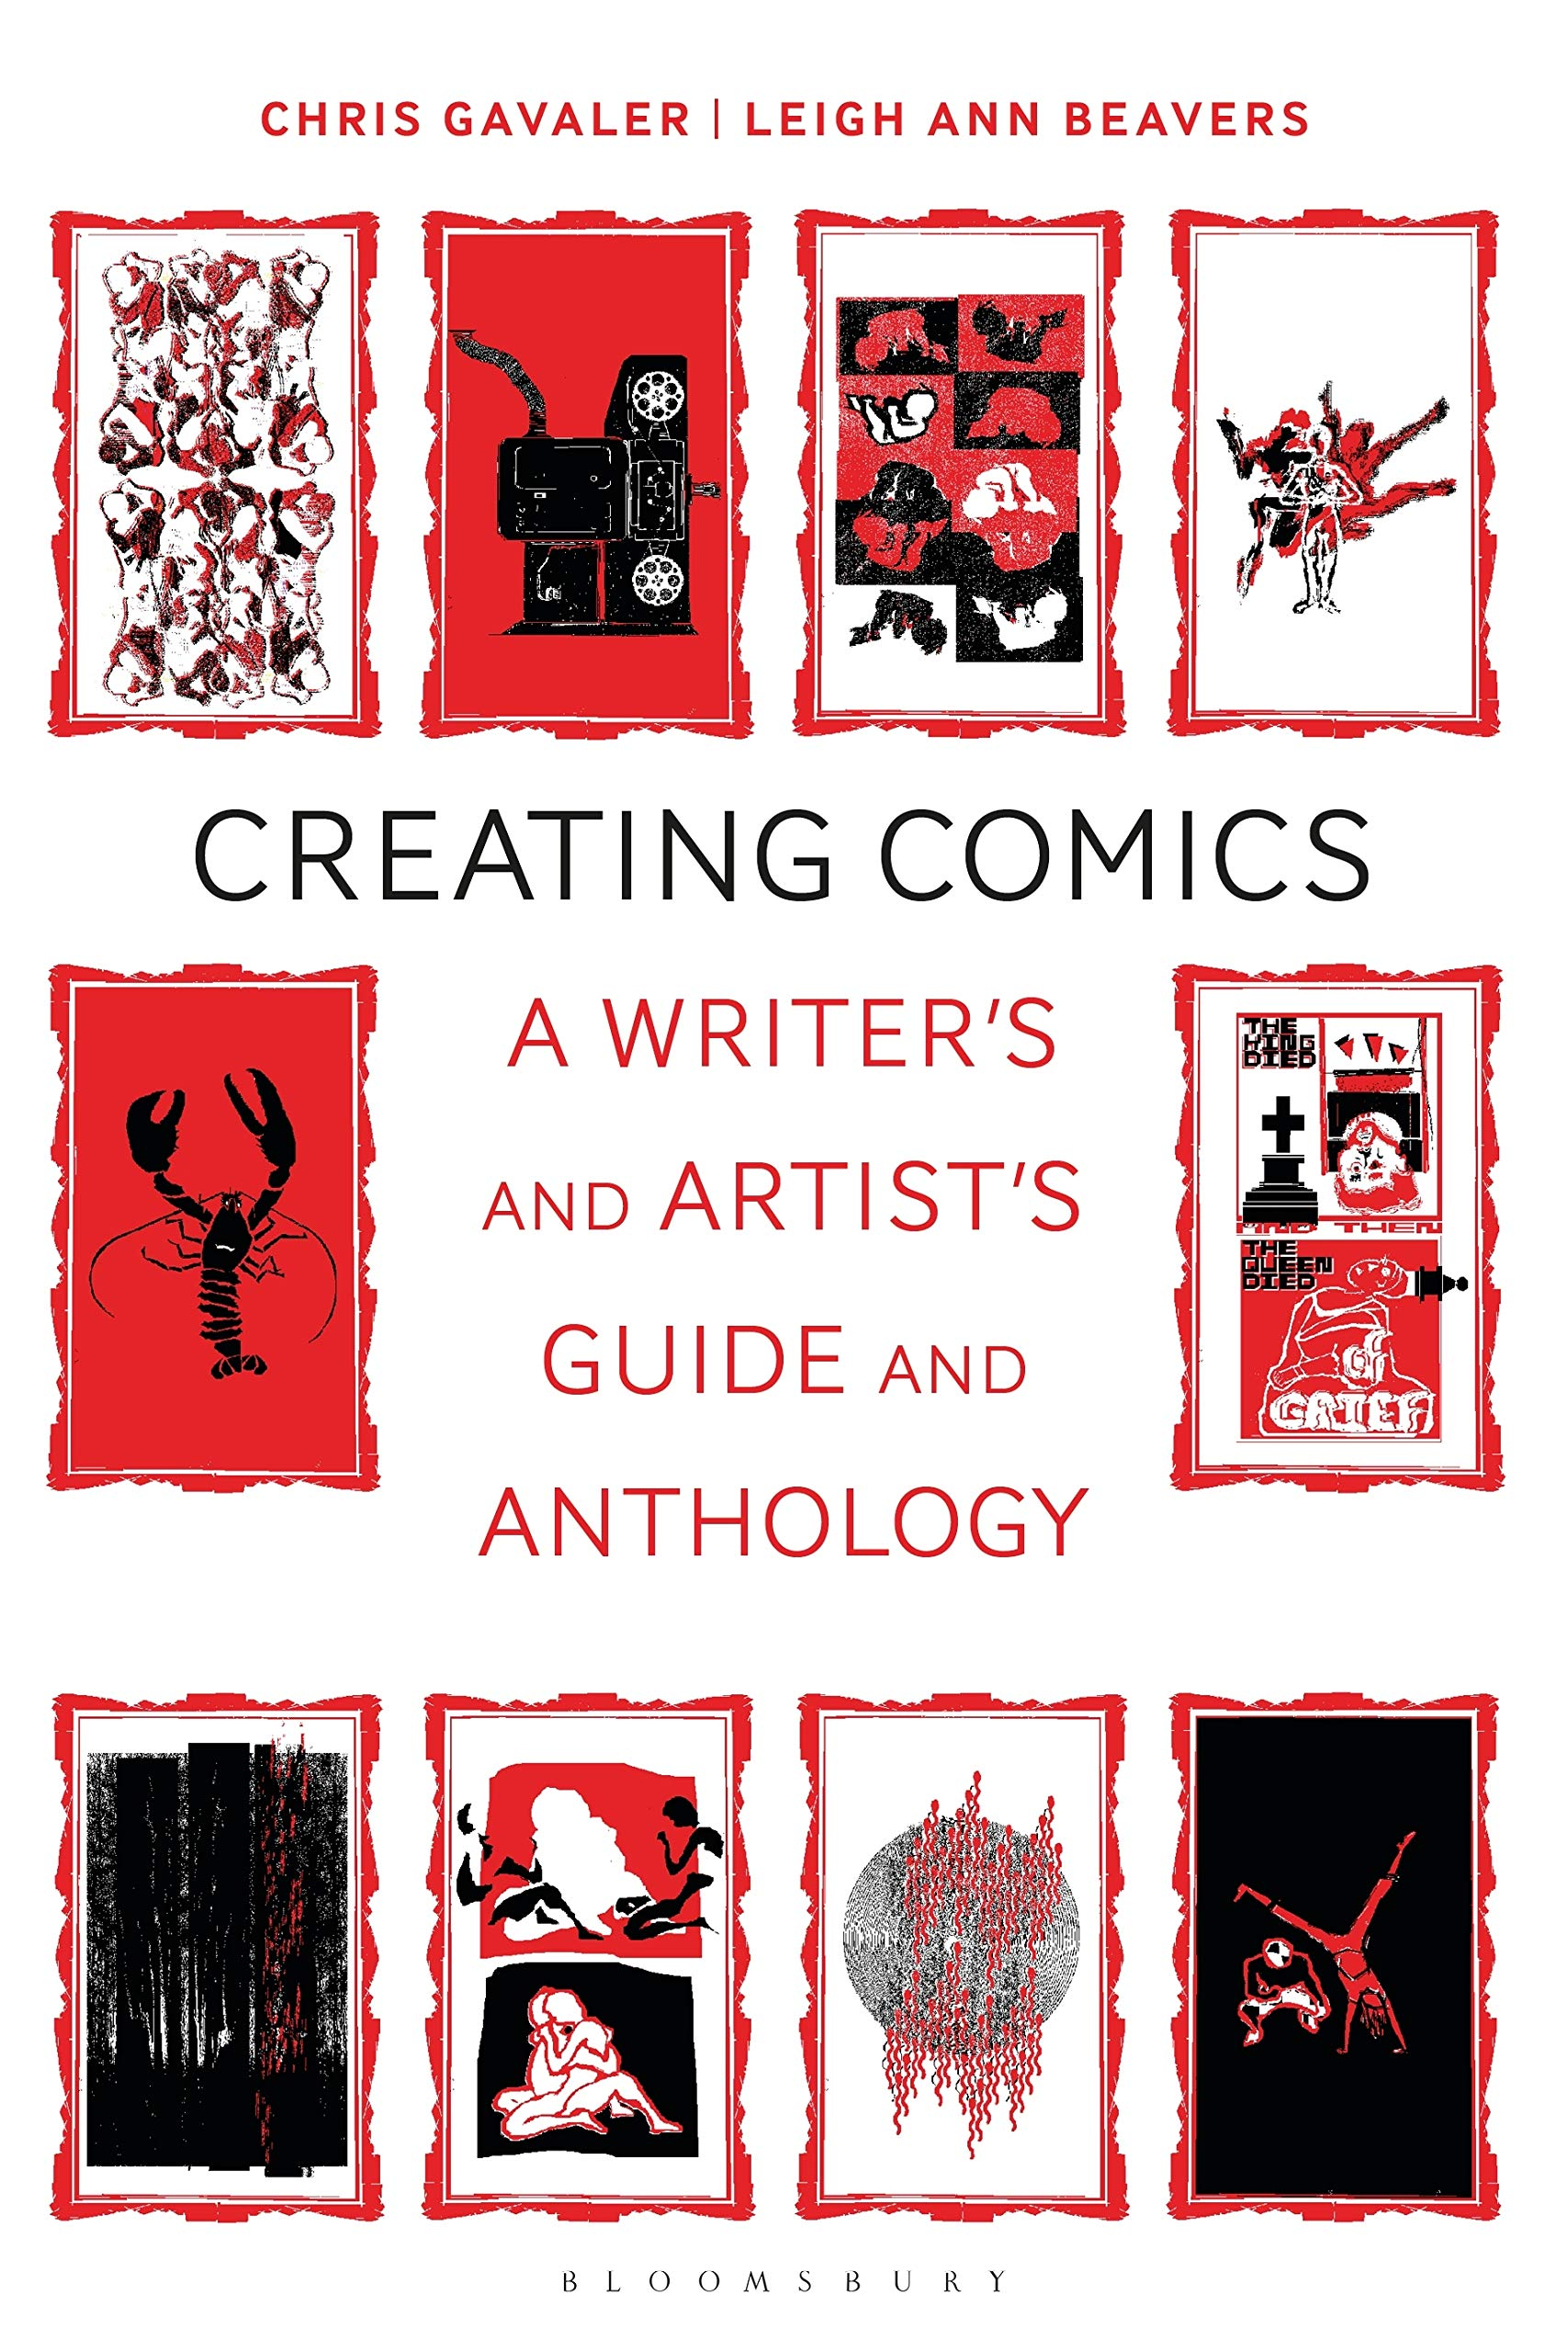 Amazon.com: Creating Comics: A Writer's and Artist's Guide and Anthology (Bloomsbury Writers' Guides and Anthologies) (9781350092822): Gavaler, Chris, Beavers, Leigh Ann, Wilkins, Joe, Prentiss, Sean: Books